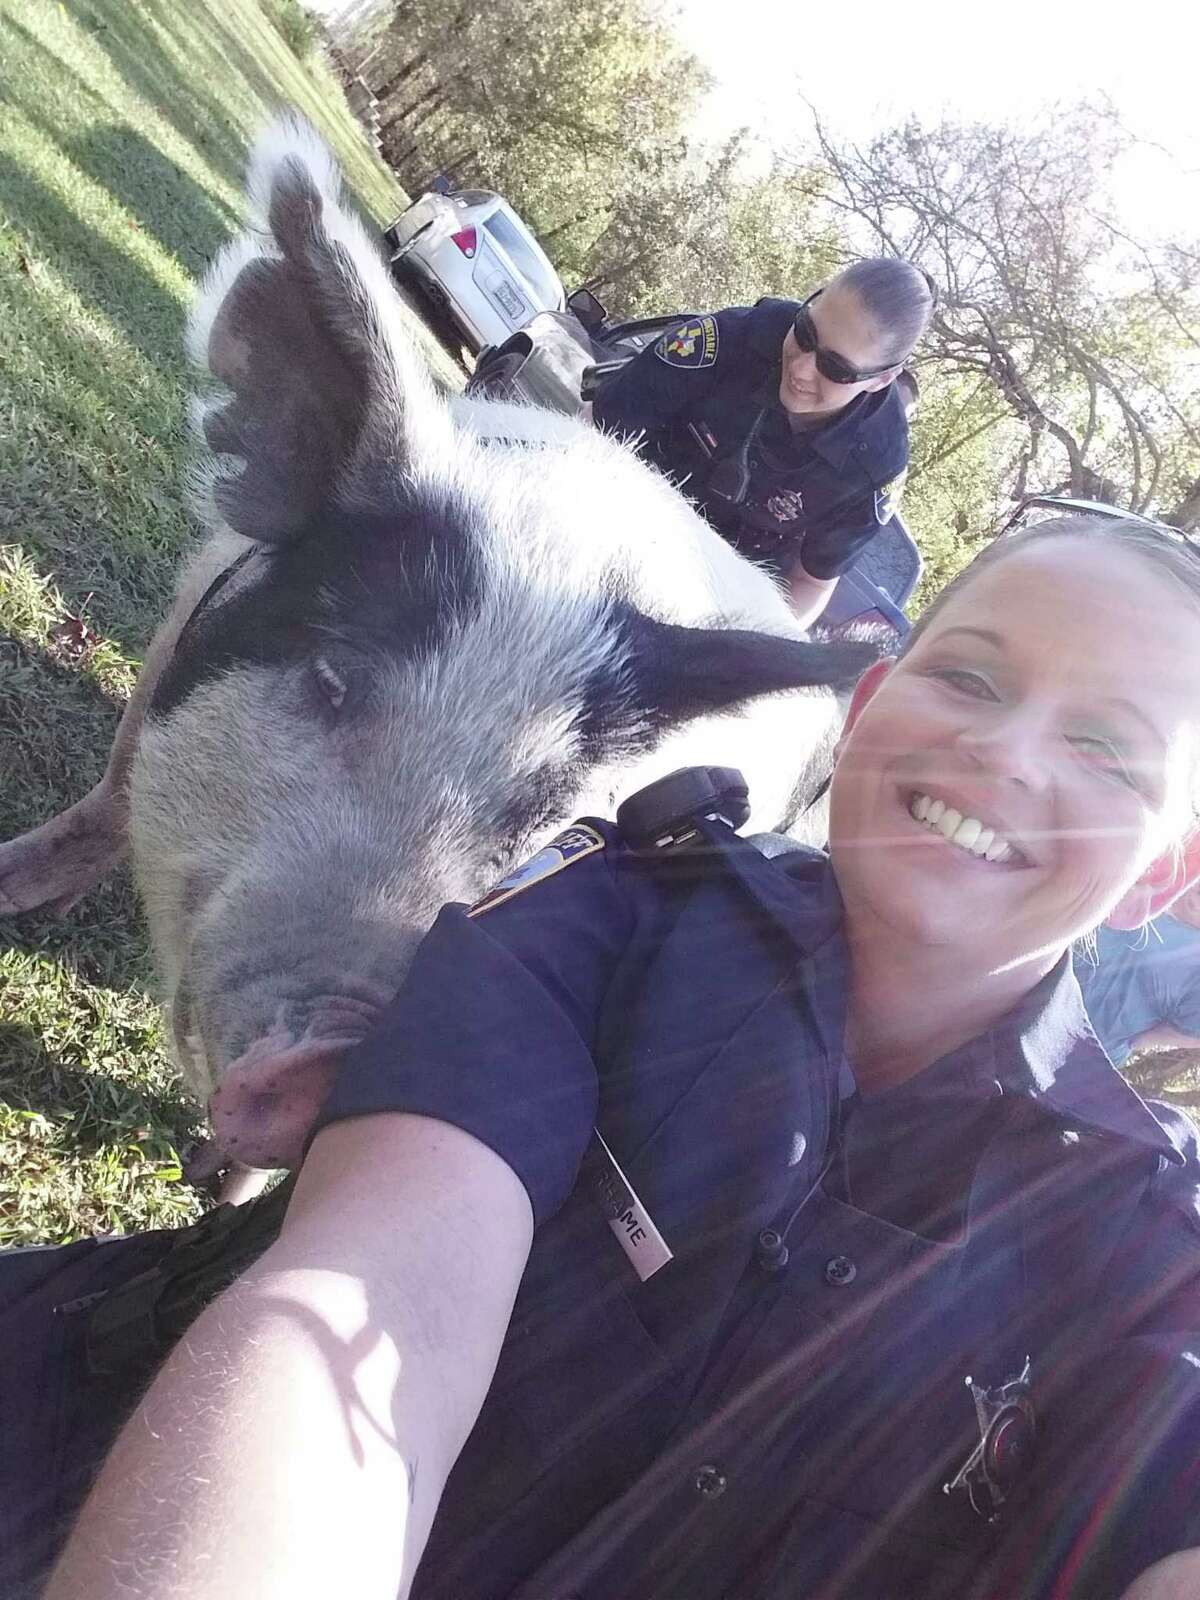 Liberty County Sheriff's Deputy Shandalynn Rhames takes a selfie with Miss Piggy, a pet pig that recently caused a bit of an incident in Dayton when she escaped her pen and went on a walk through her neighborhood.